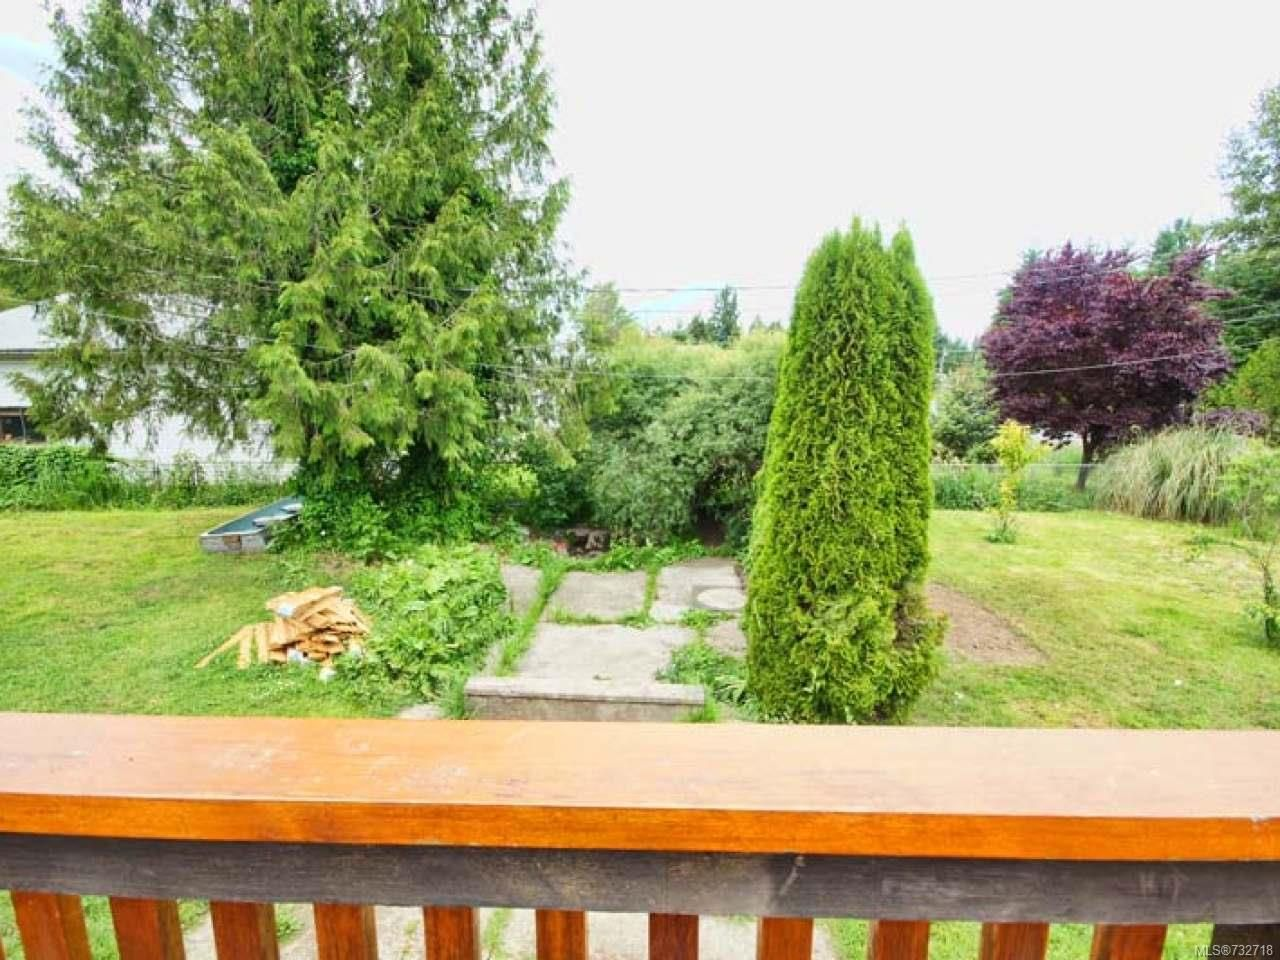 Photo 28: Photos: 921 POPLAR Way in ERRINGTON: PQ Errington/Coombs/Hilliers Manufactured Home for sale (Parksville/Qualicum)  : MLS®# 732718